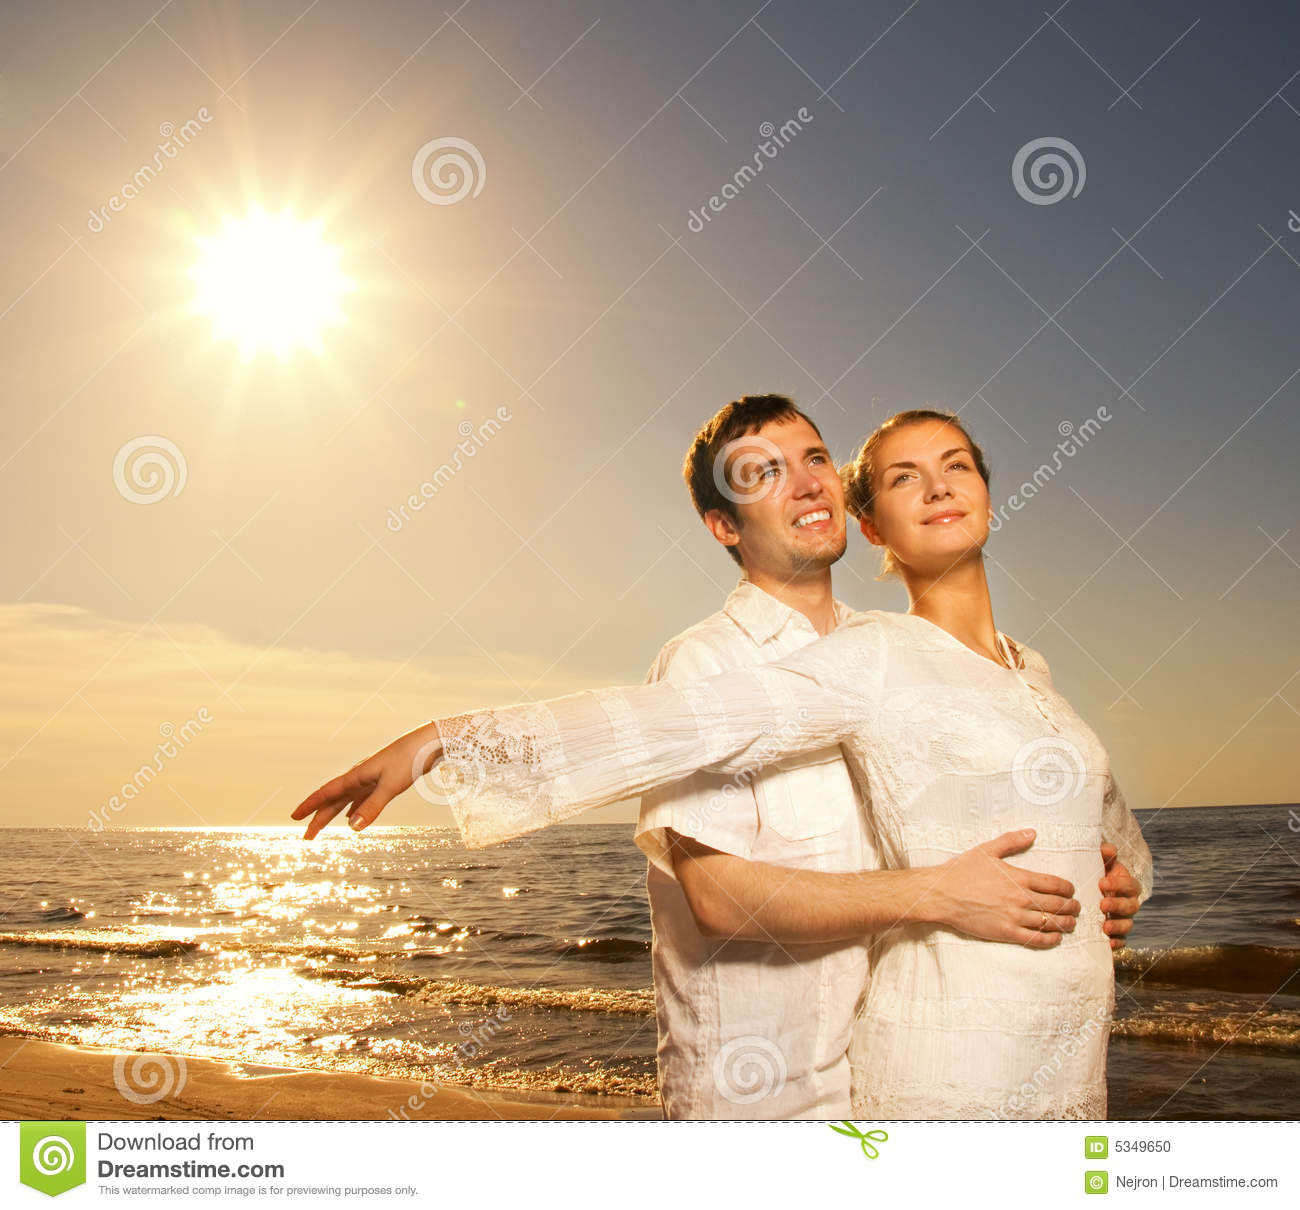 Viet Küche Köln Couple Relaxing Near The Sea Stock Photo Image Of Female Hands